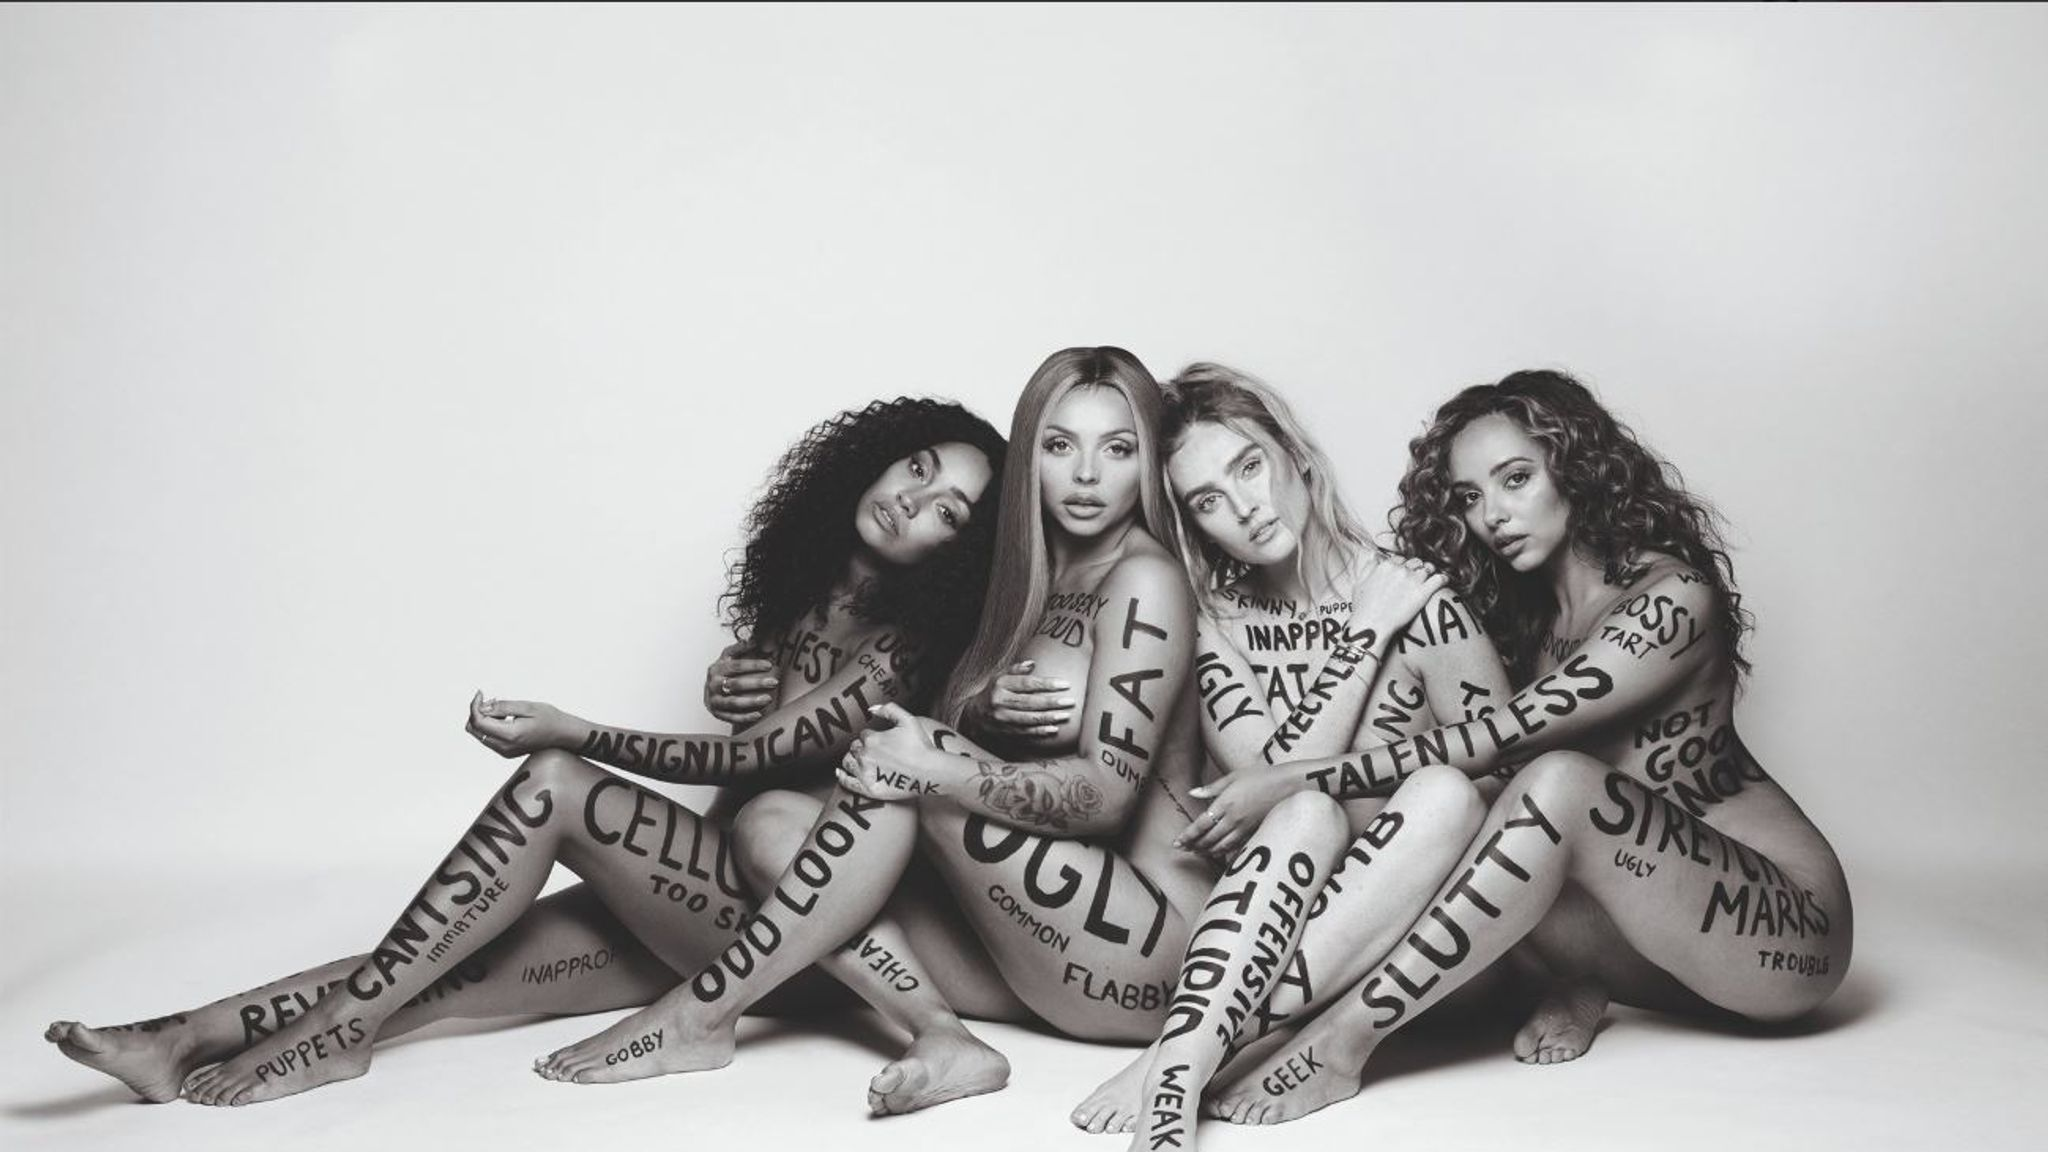 Little Mix pose naked and scrawled with insults for new song